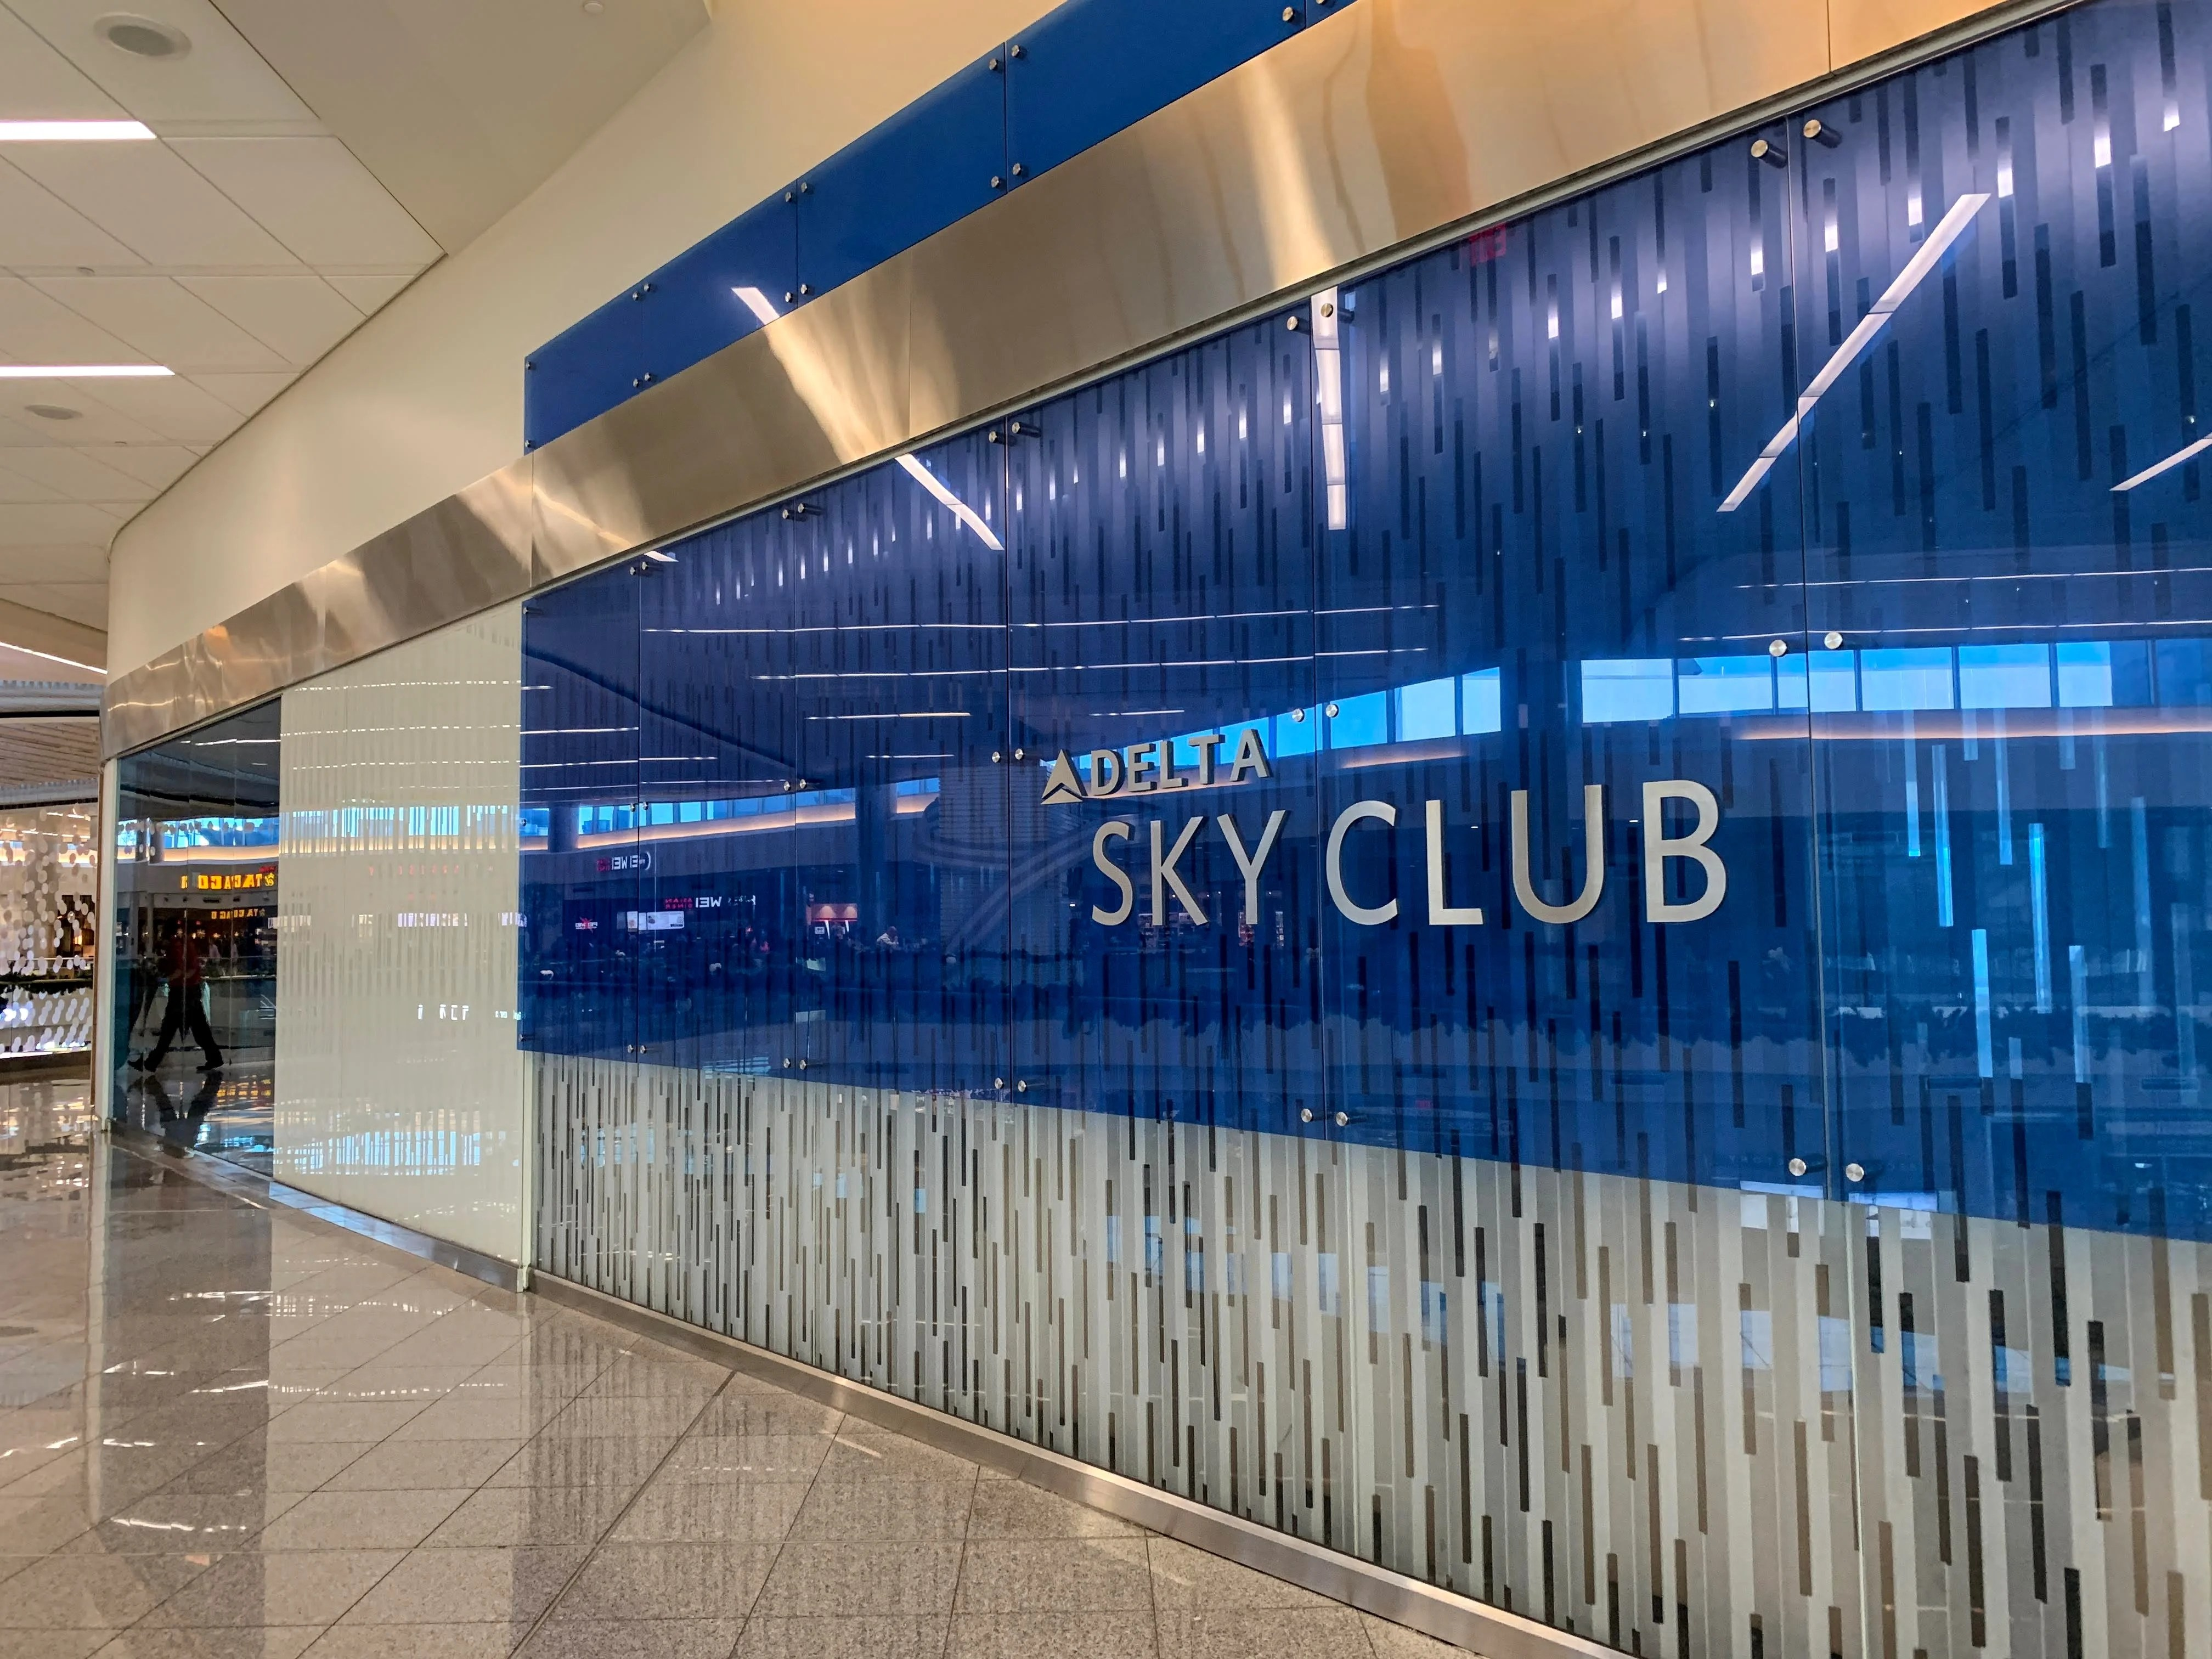 Delta Sky Club Guide How To Get Access The Points Guy